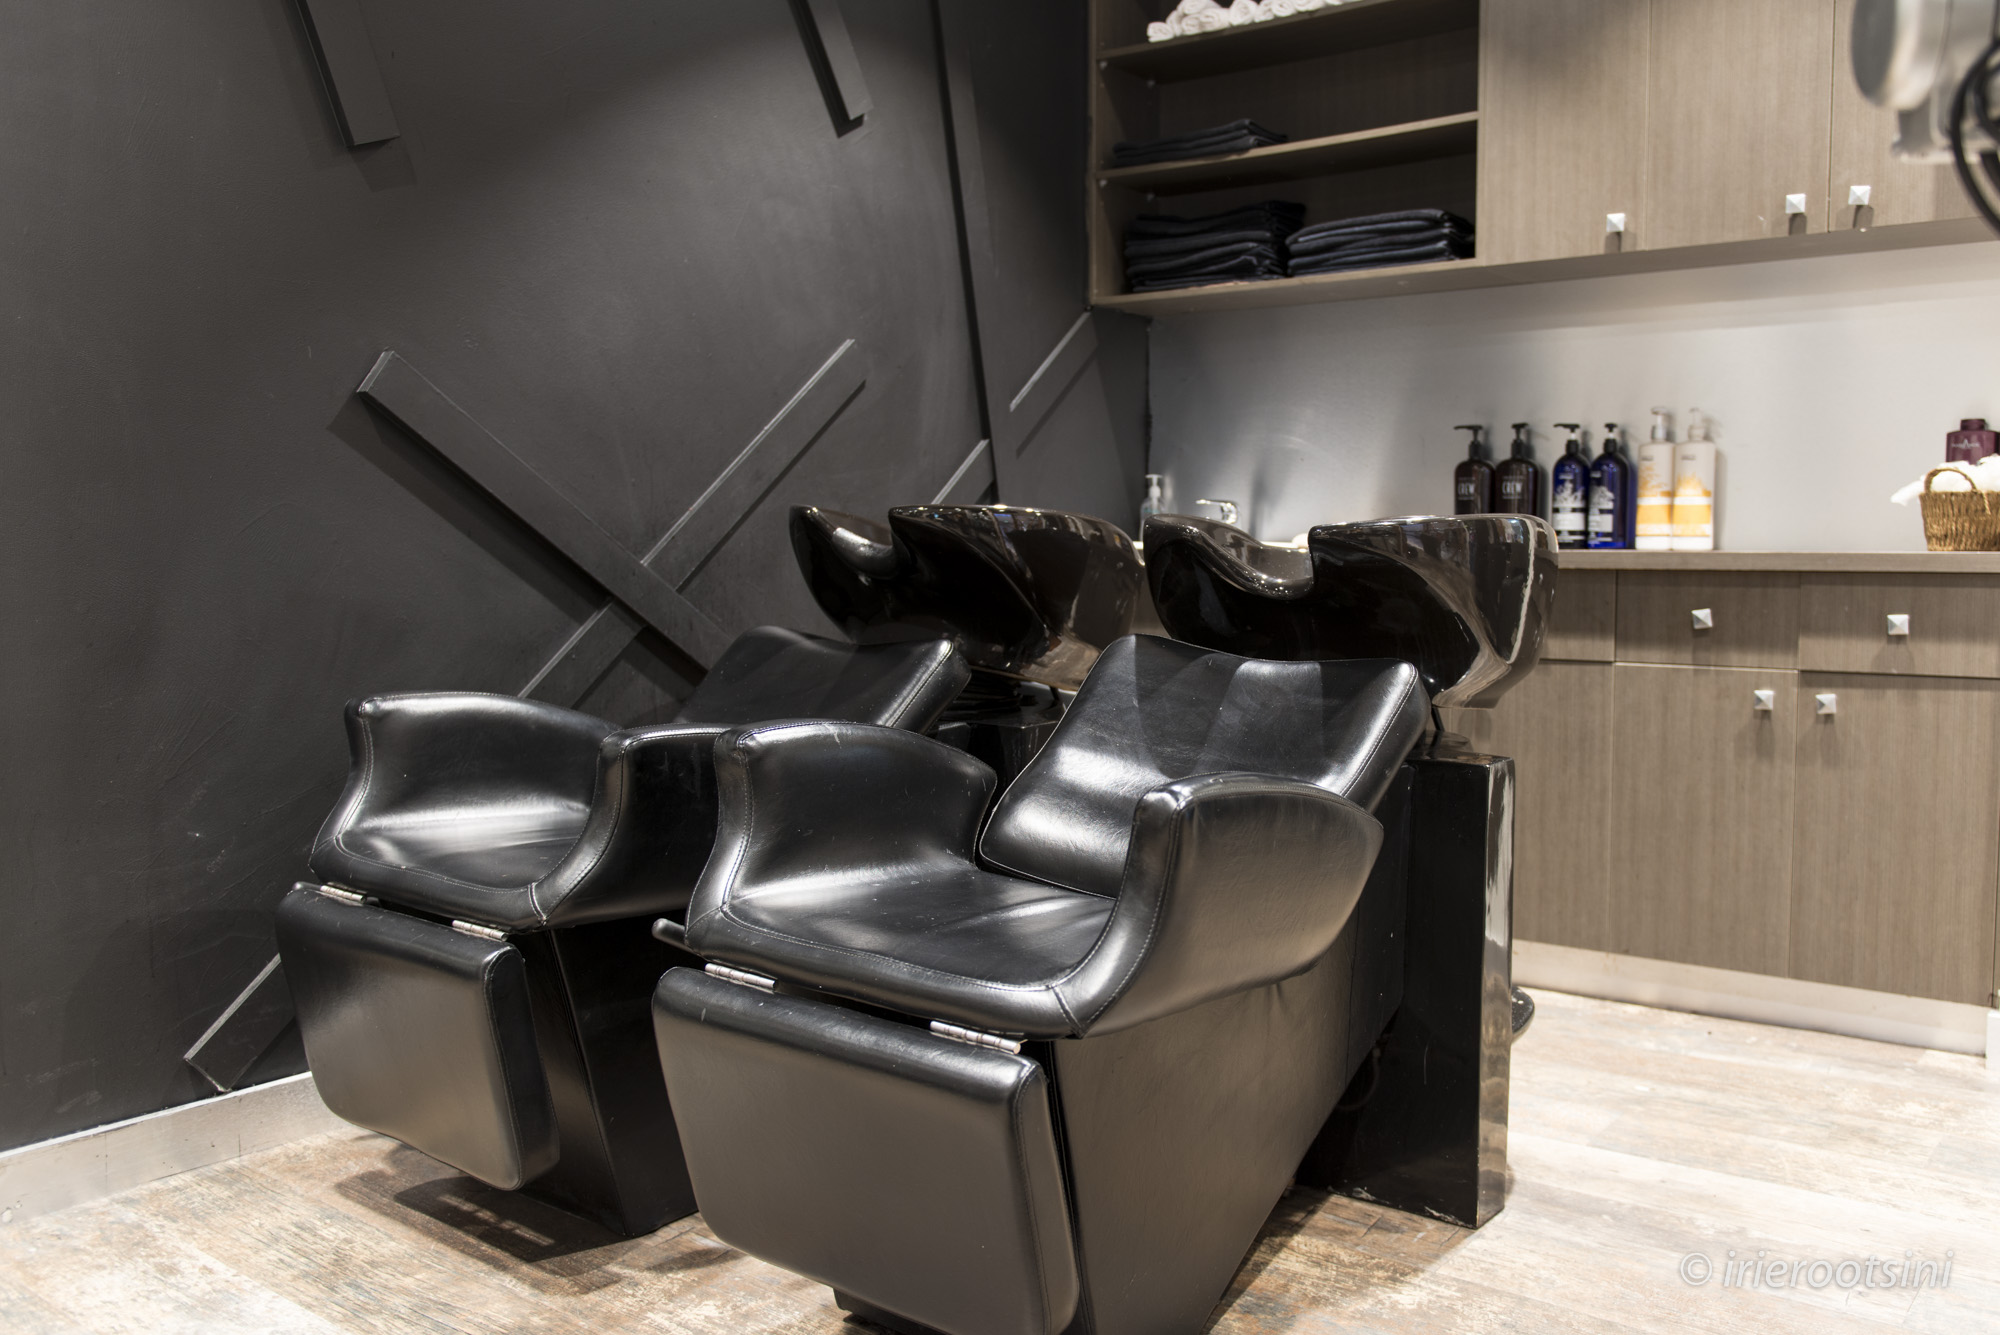 shampoo-chair-natural-lighting-interior-shot